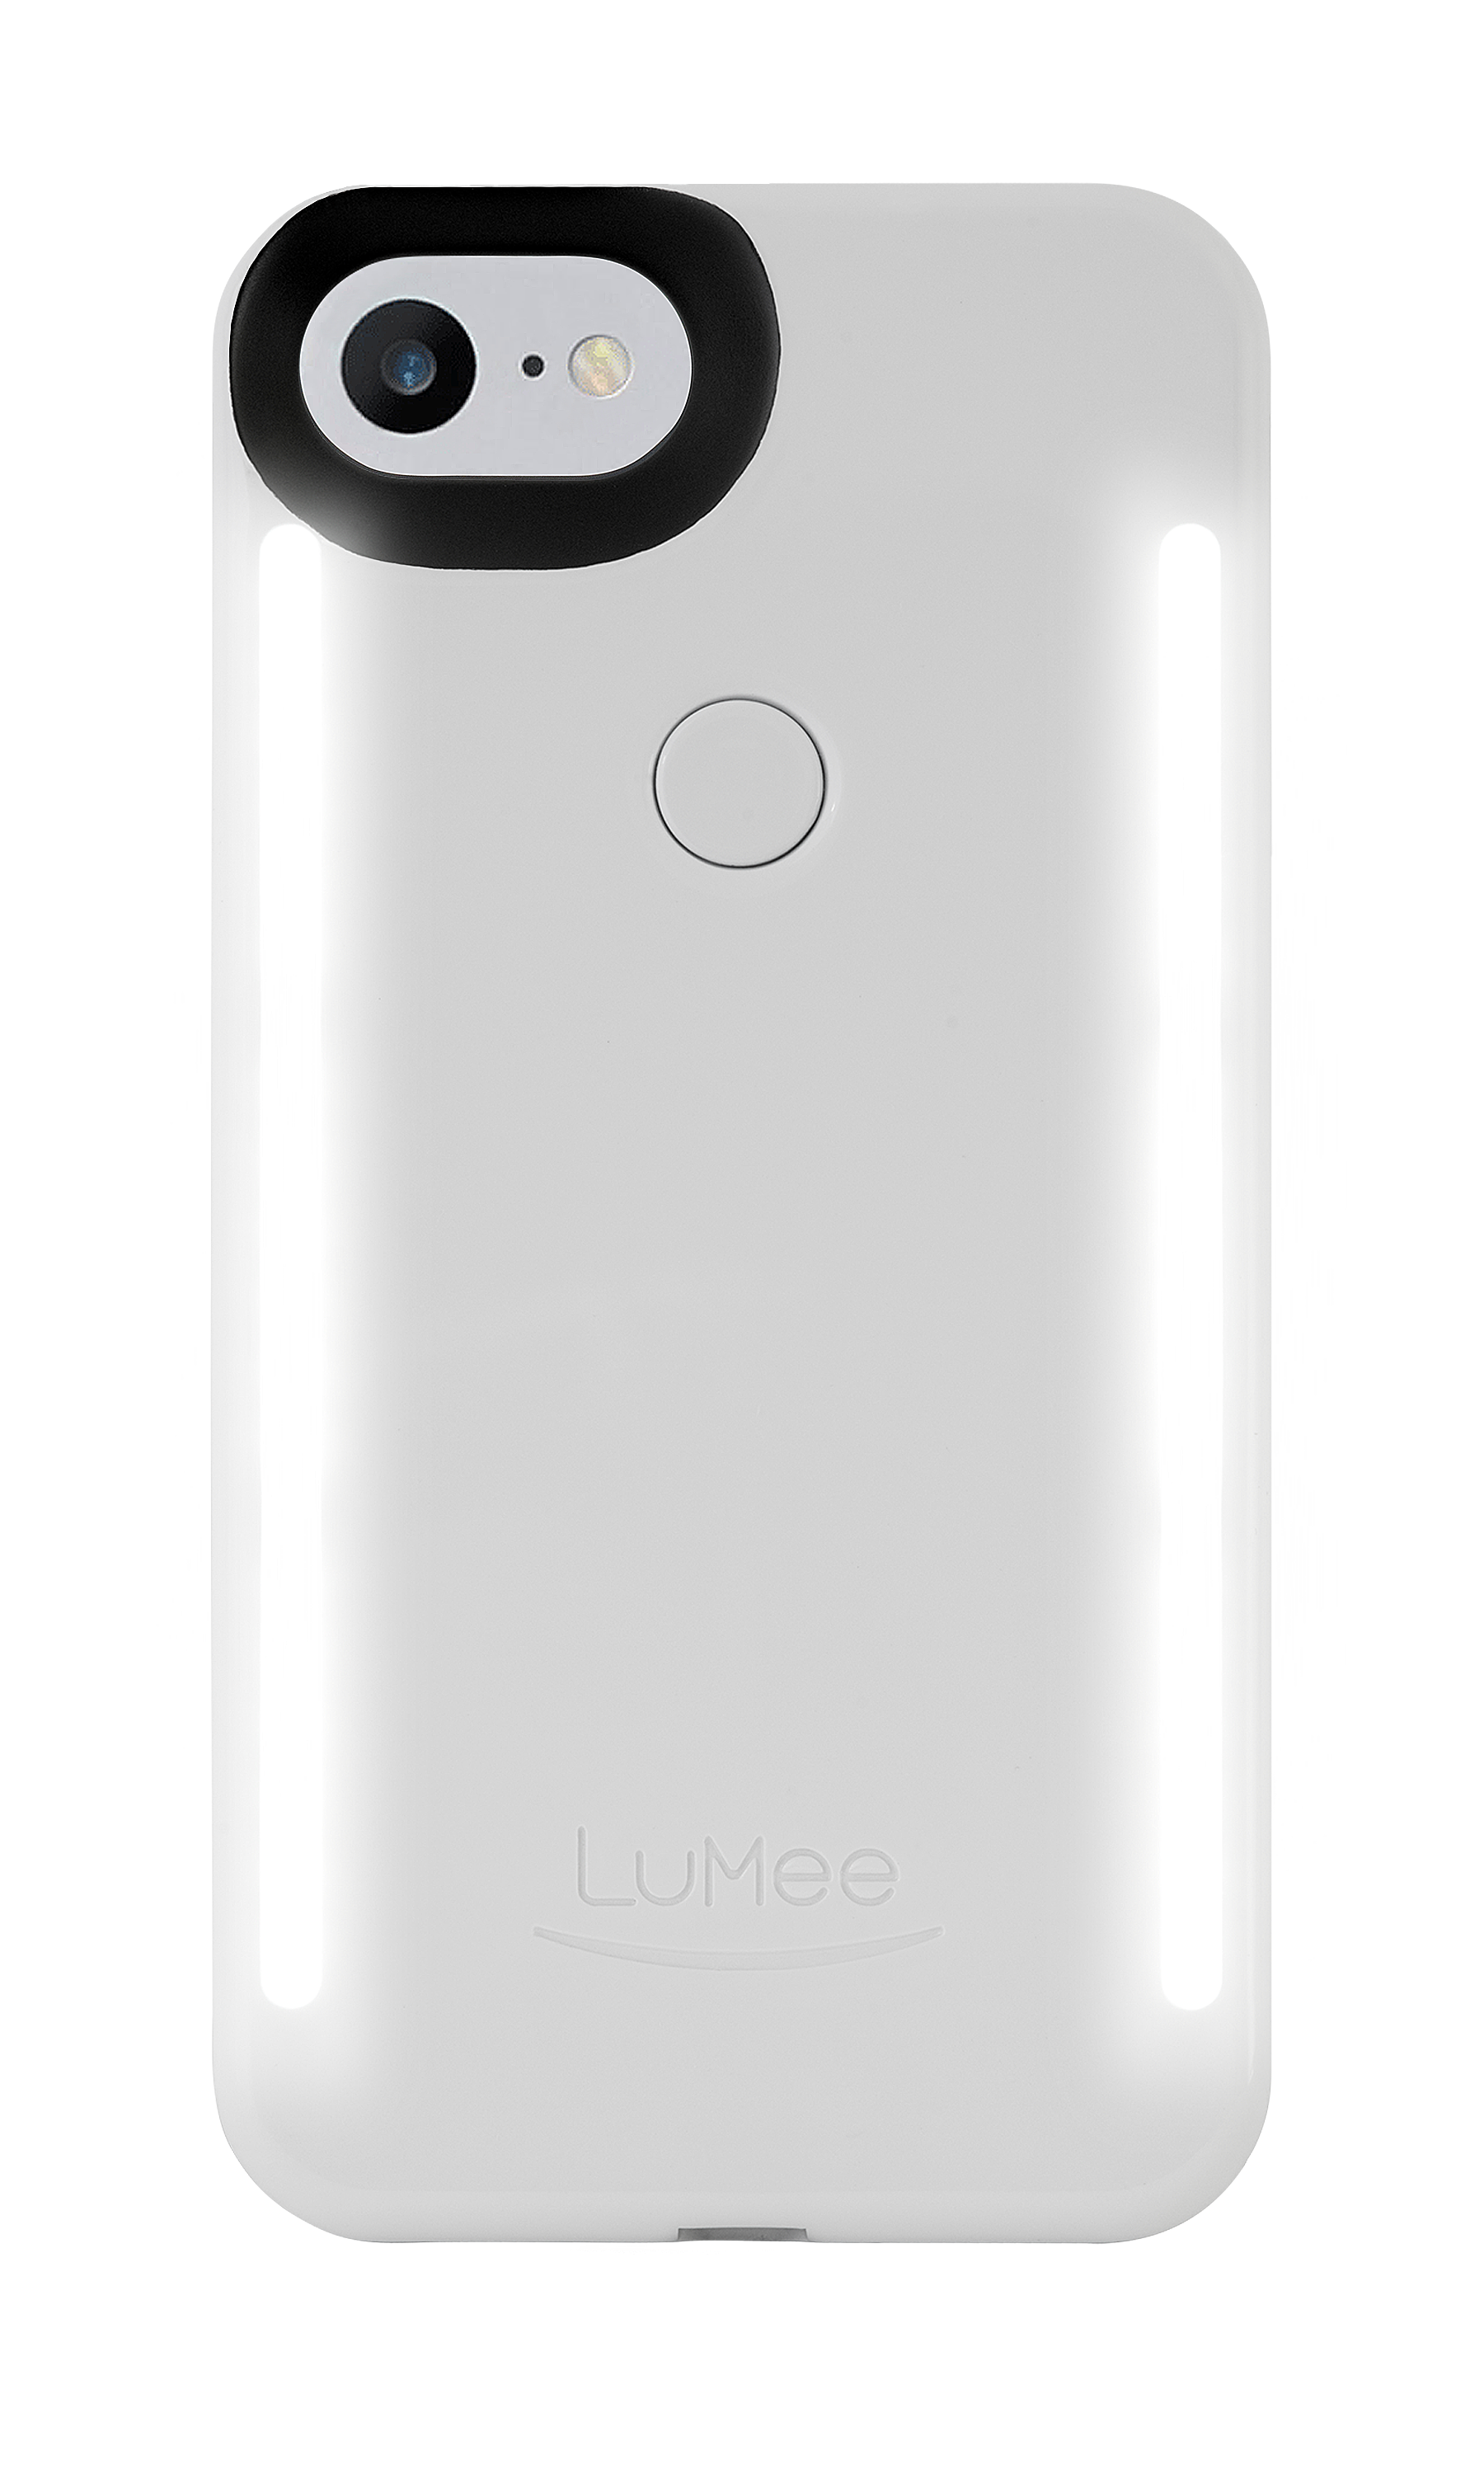 newest collection cde74 9121b LuMee Selfie Light Up Phone Cases - iPhone 7